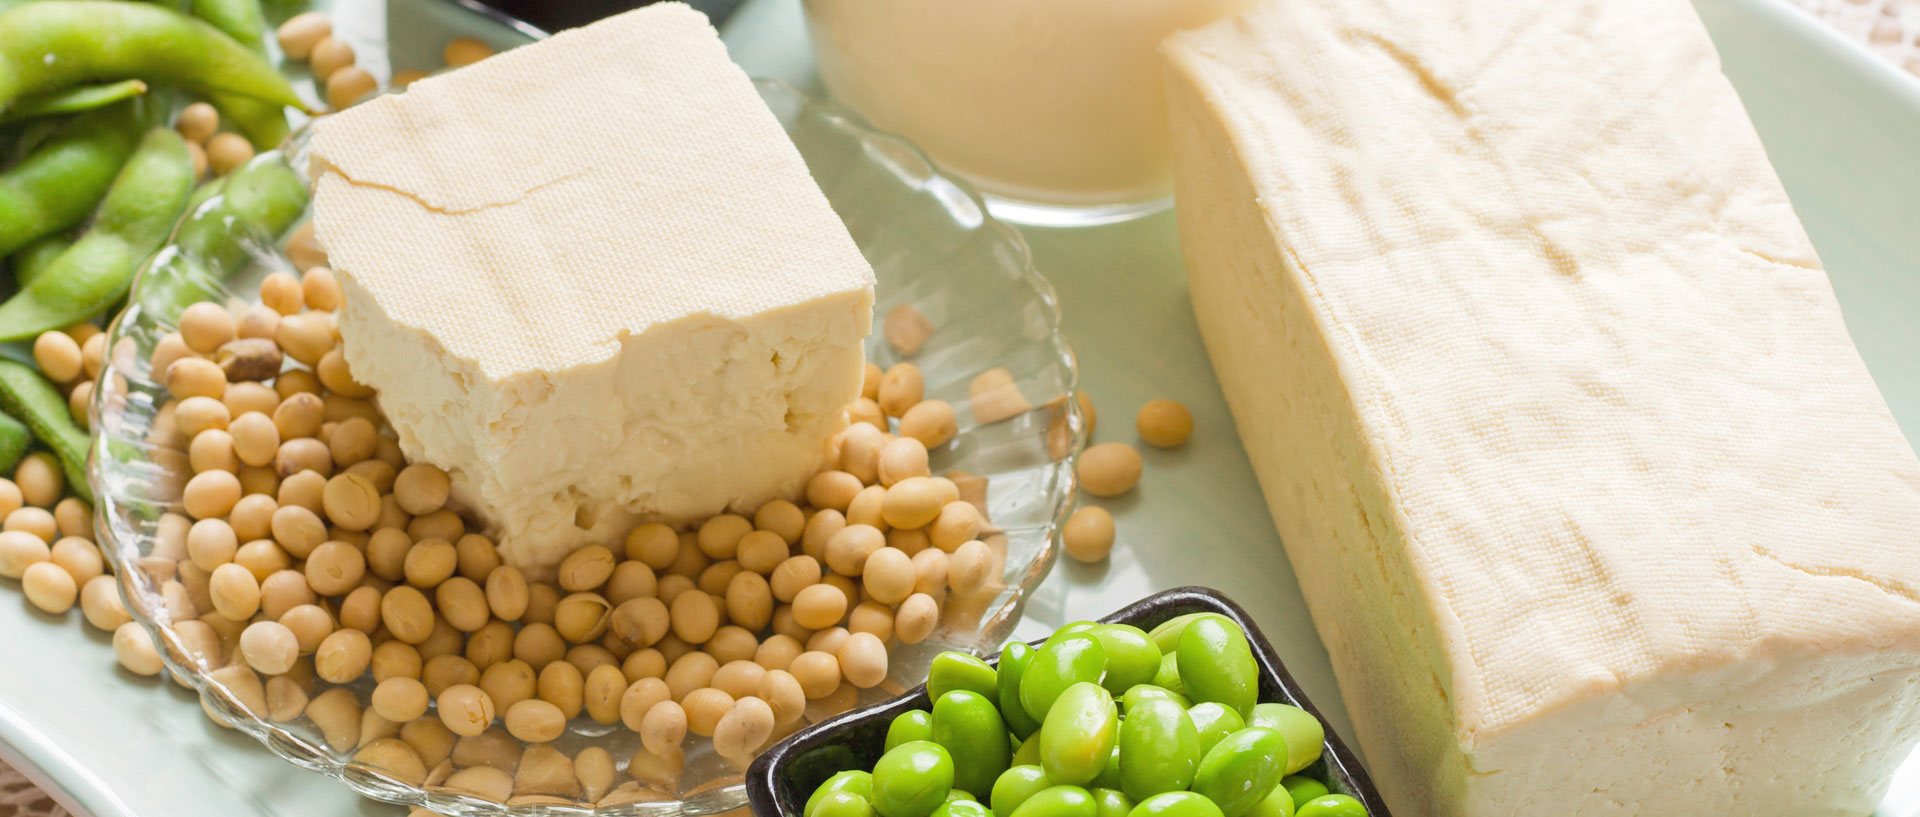 The Scoop On Soy Safety Consumer Reports